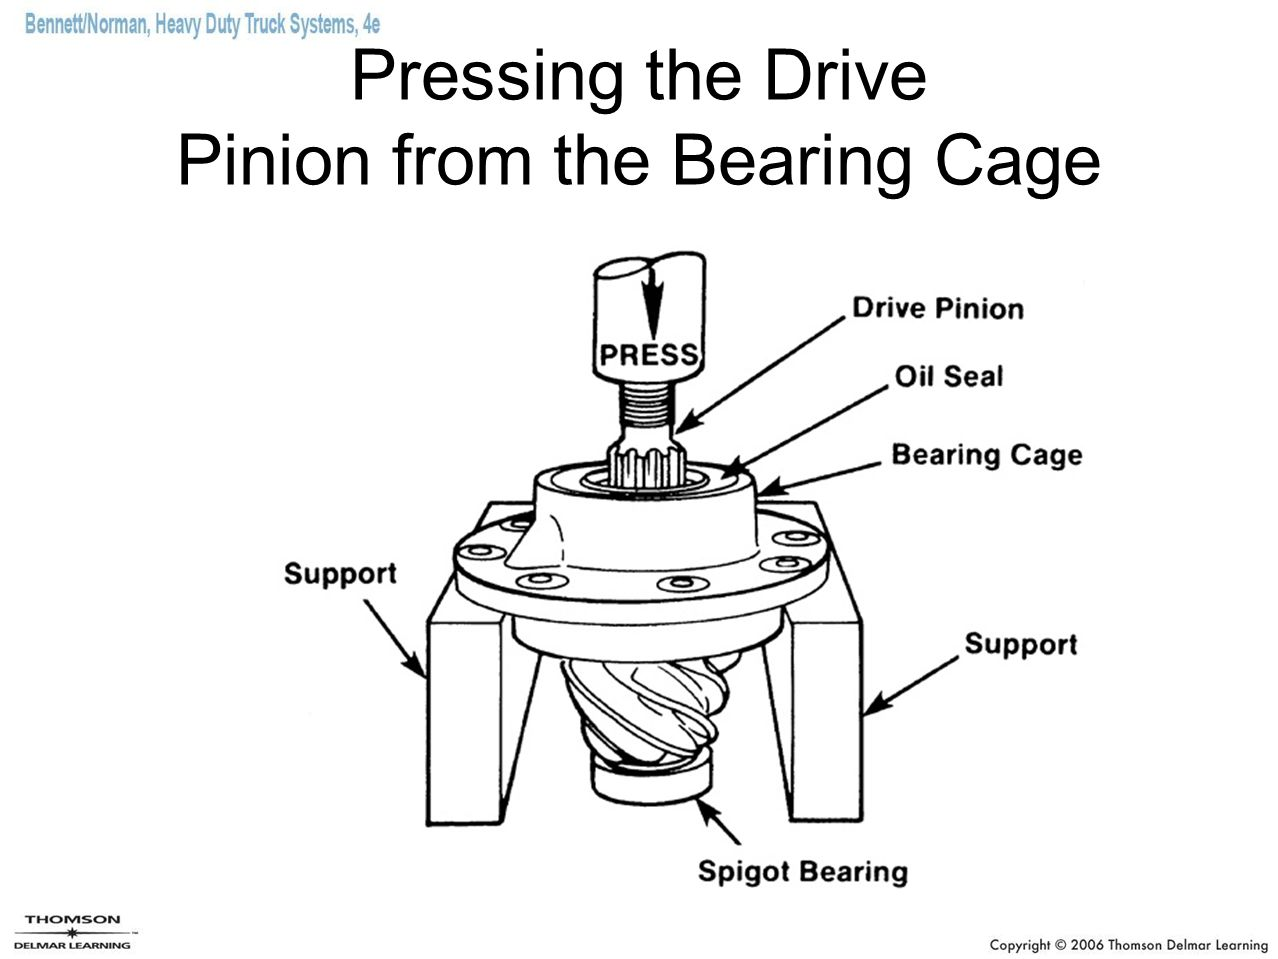 Pressing the Drive Pinion from the Bearing Cage